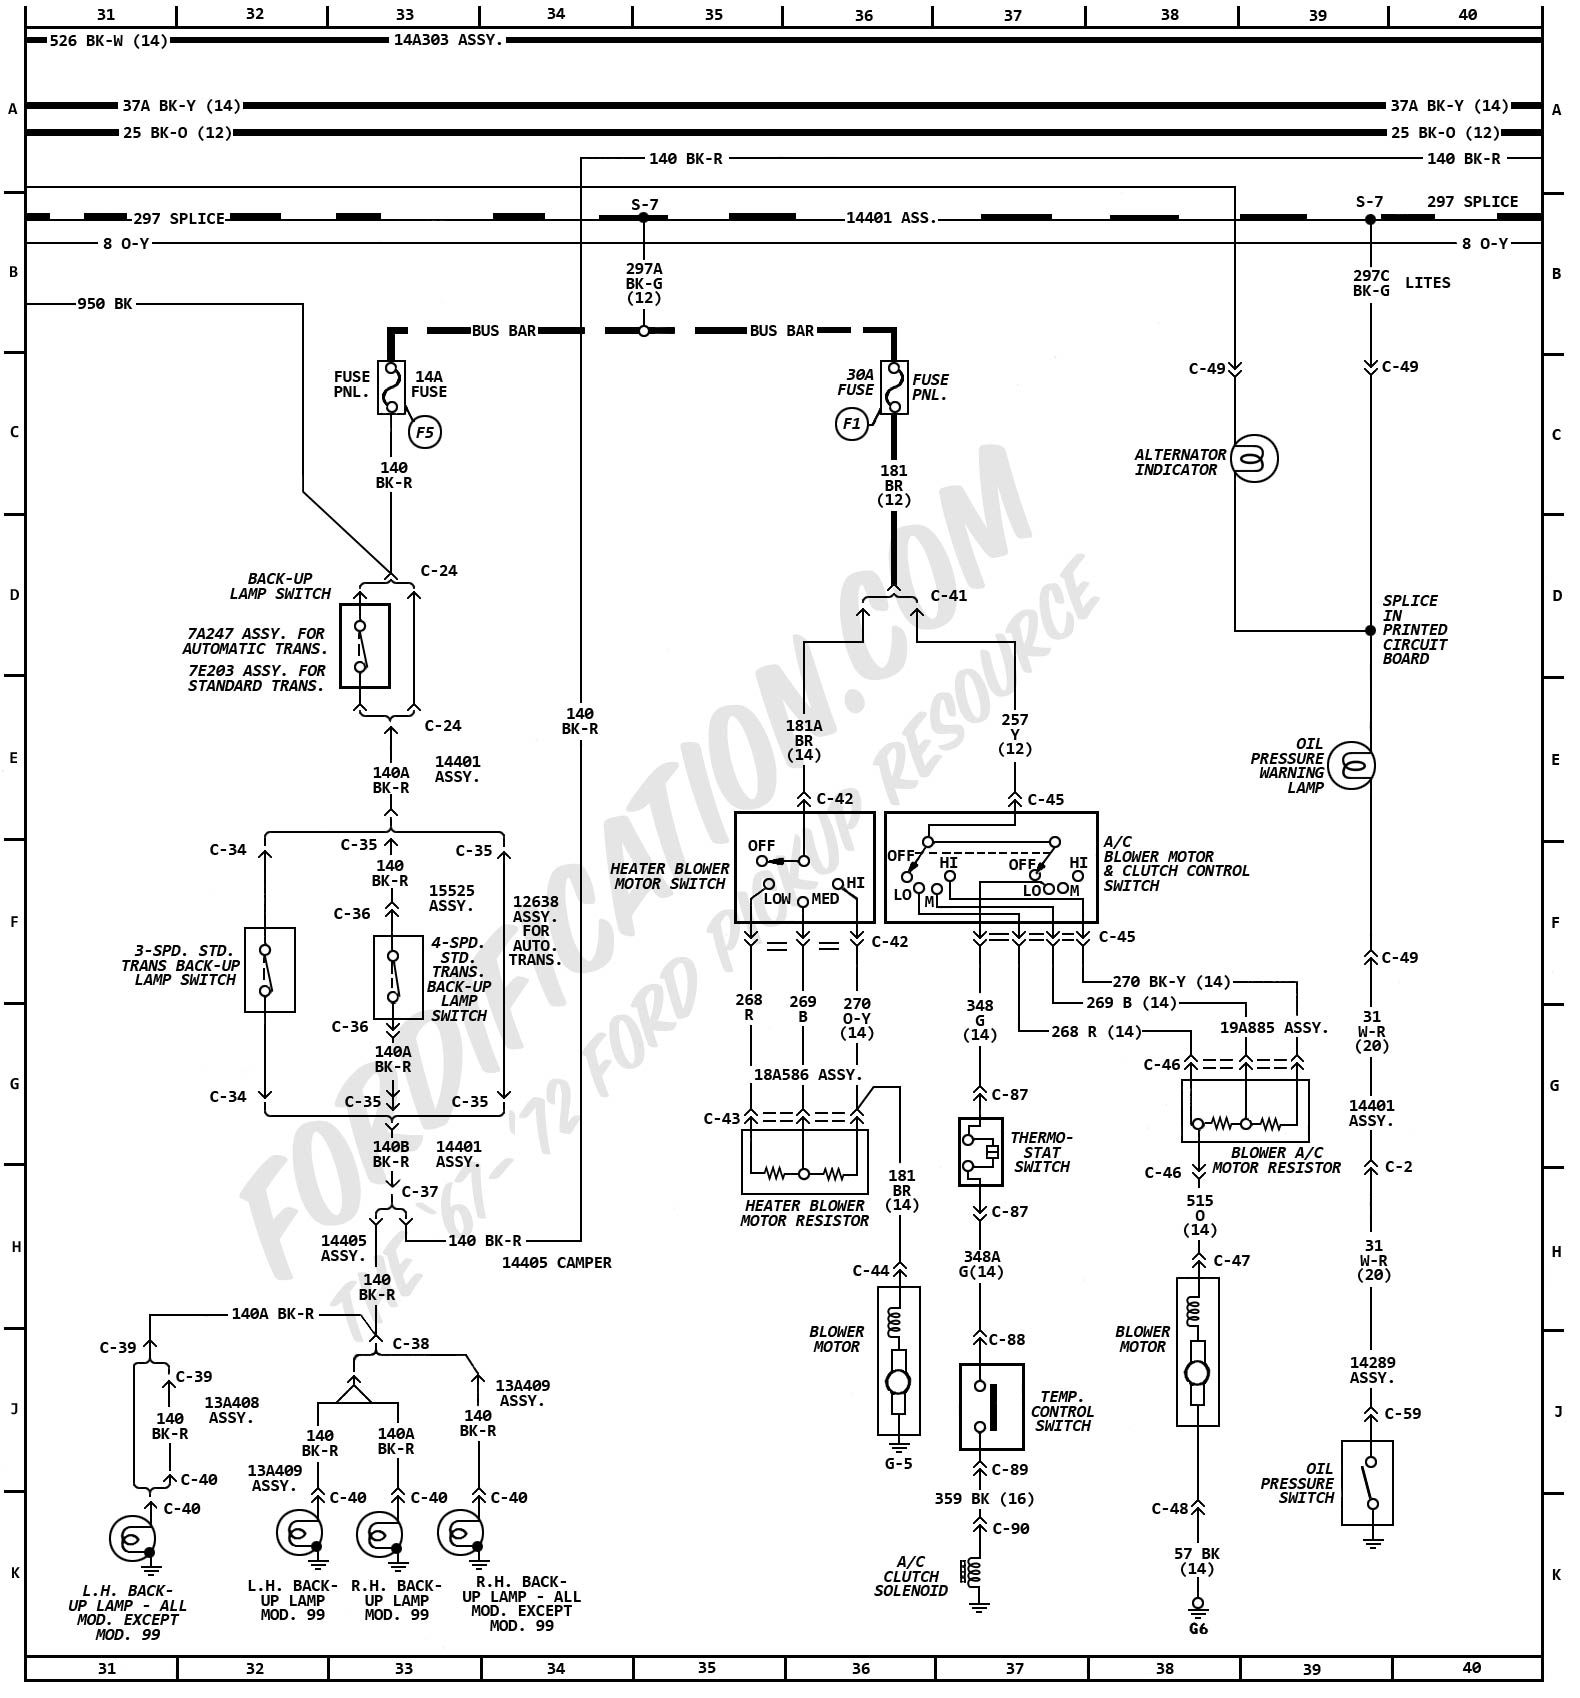 1950 ford heater blower motor wiring diagram 1972 ford truck wiring diagrams - fordification.com ford 500 blower motor wiring diagram